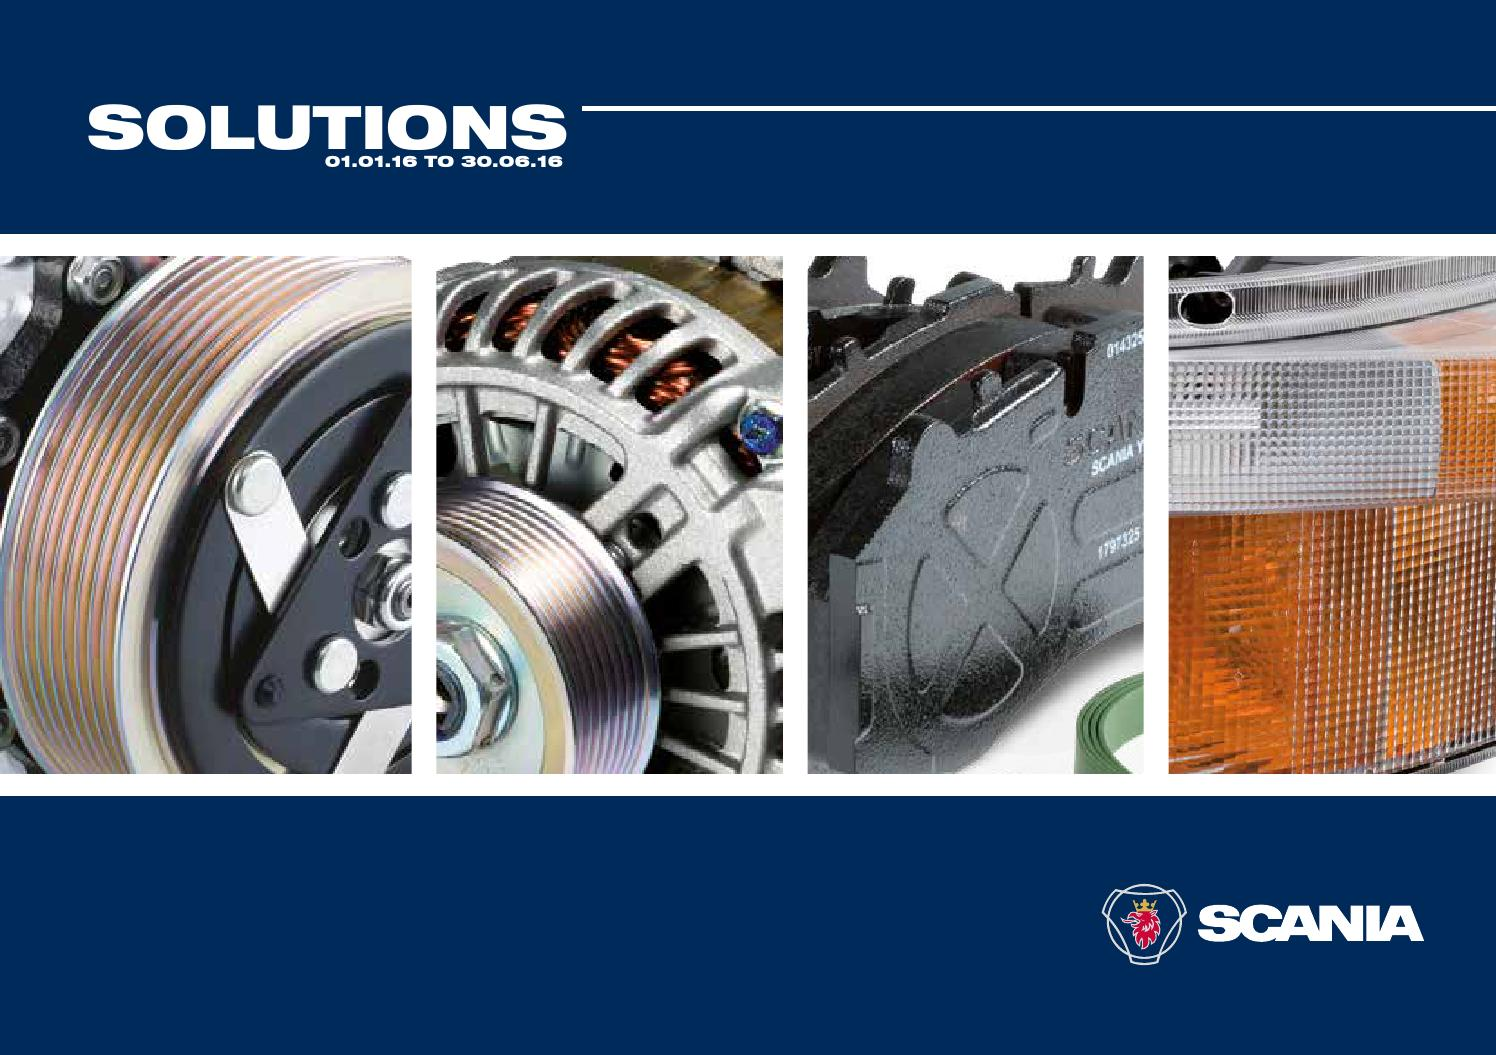 Scania solutions brochure 2016 by Scania (Great Britain